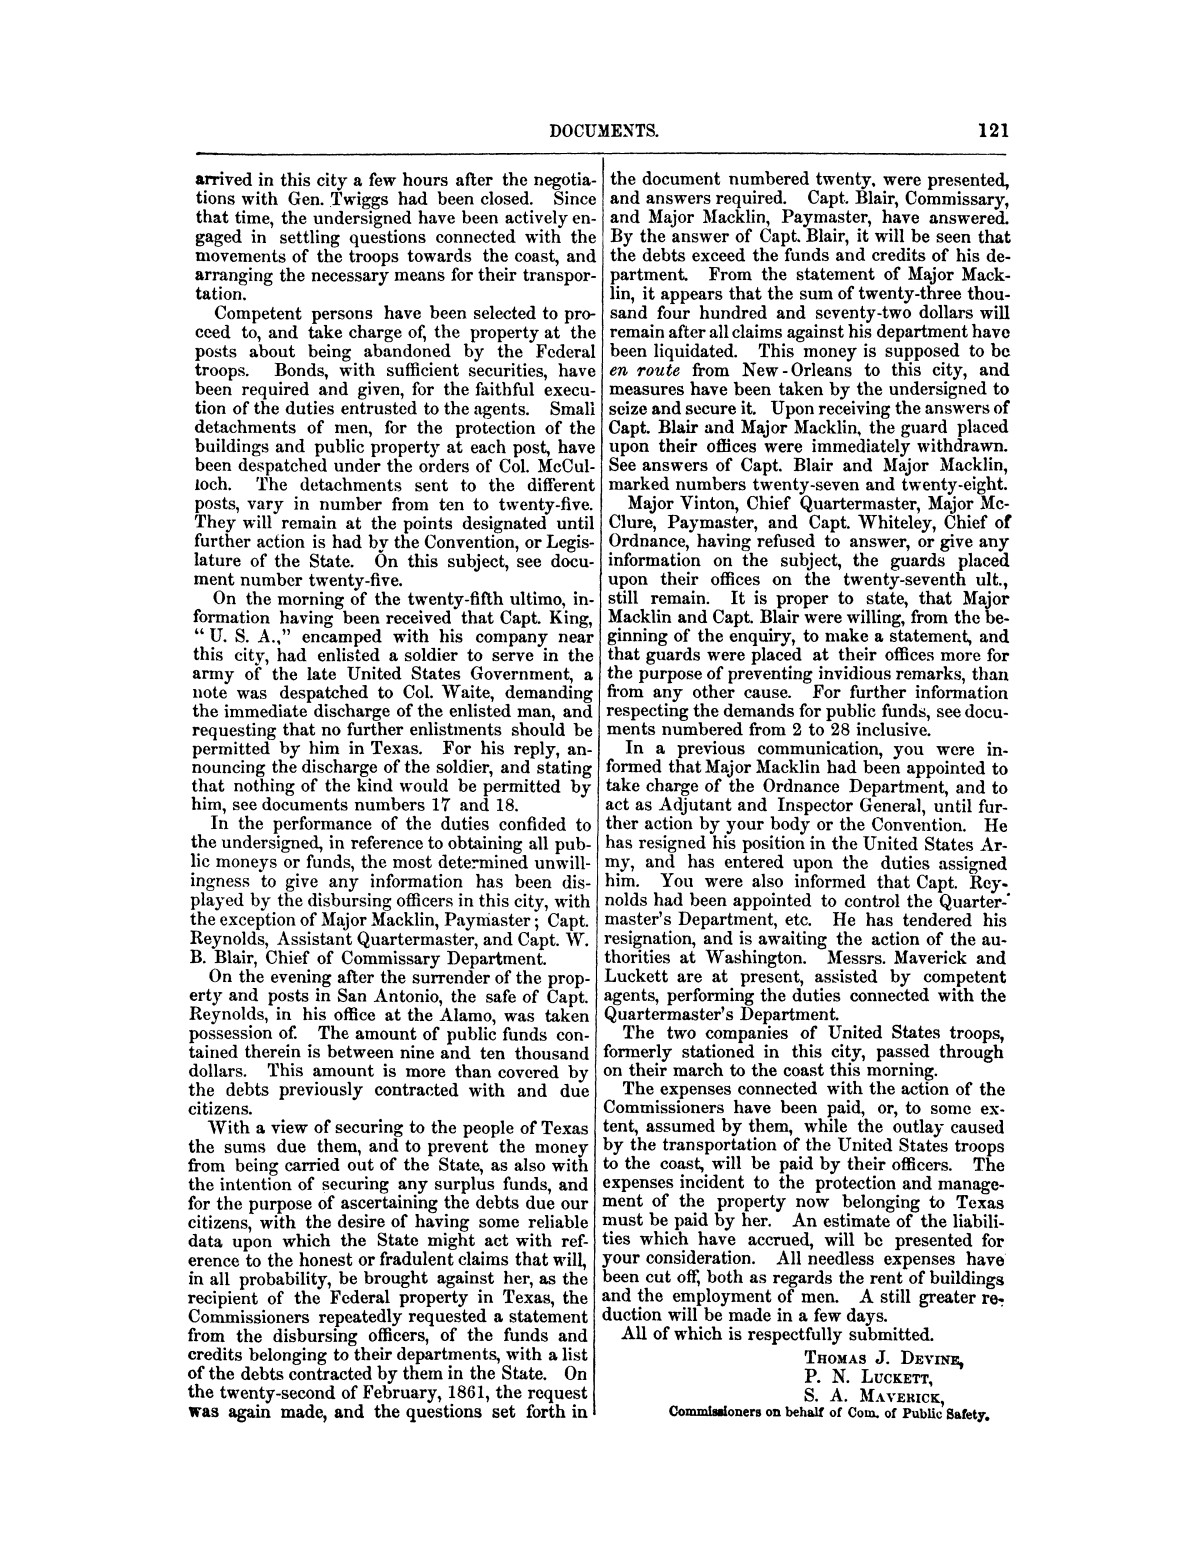 The treachery in Texas, the secession of Texas, and the arrest of the United States officers and soldiers serving in Texas. Read before the New-York Historical Society, June 25, 1861. By Major J. T. Sprague, U. S. A.                                                                                                      [Sequence #]: 15 of 36